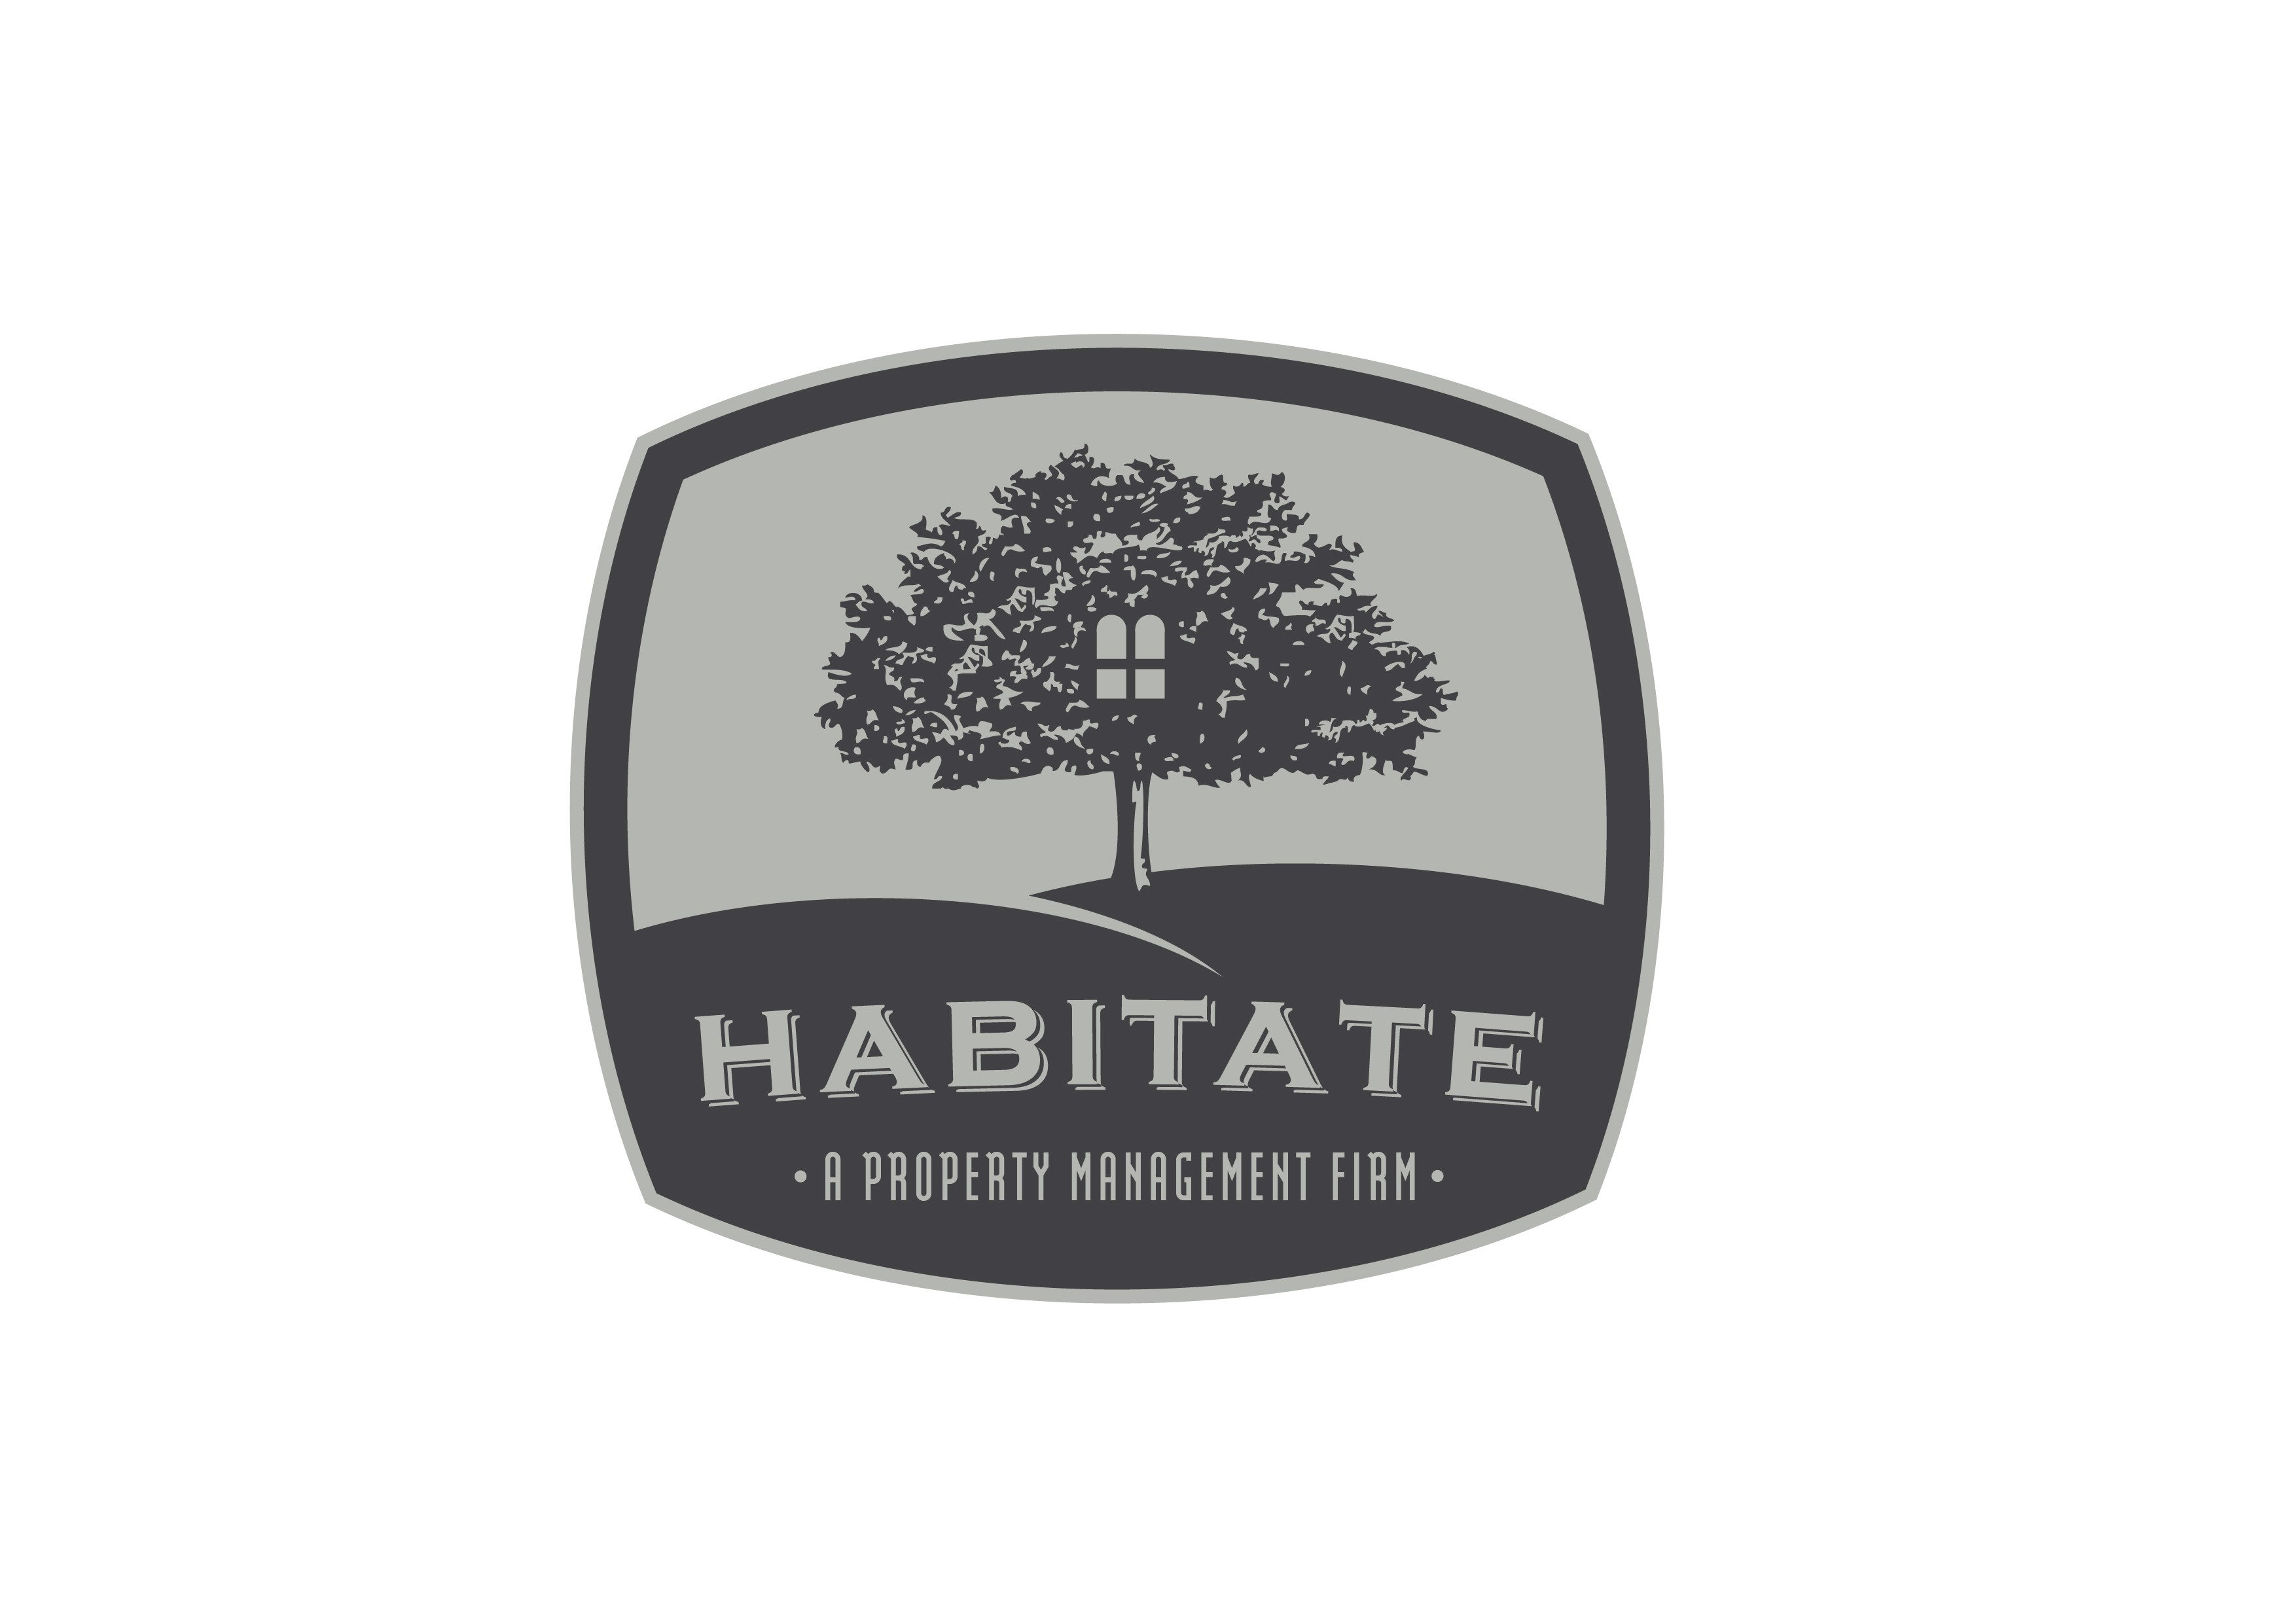 Help our start up thrive: Habitate   A Property Management Firm.